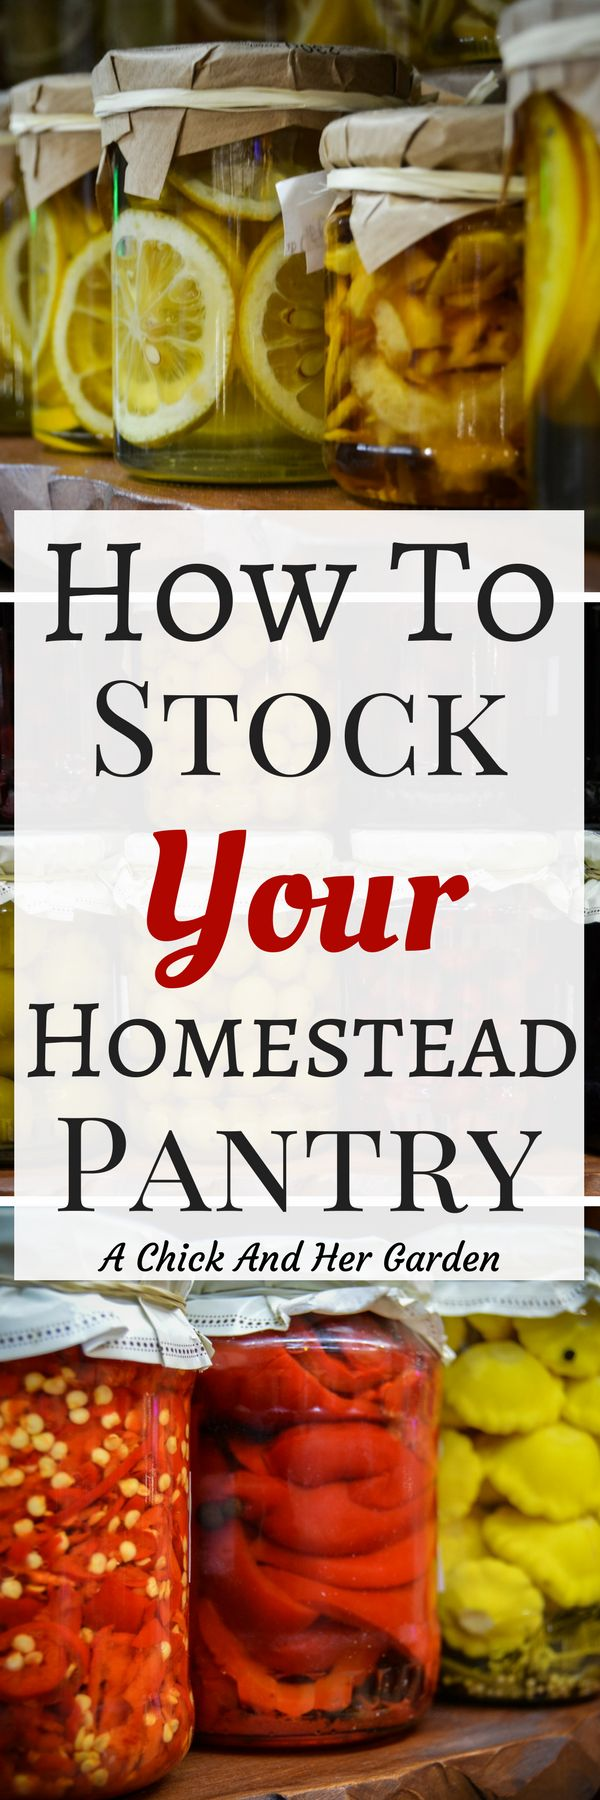 So true!  Every family has different needs!  These tips are great to customize your garden and pantry!  #foodpreservation #homesteading #homesteadpantry #canning #preserving #gardening #foodstorage